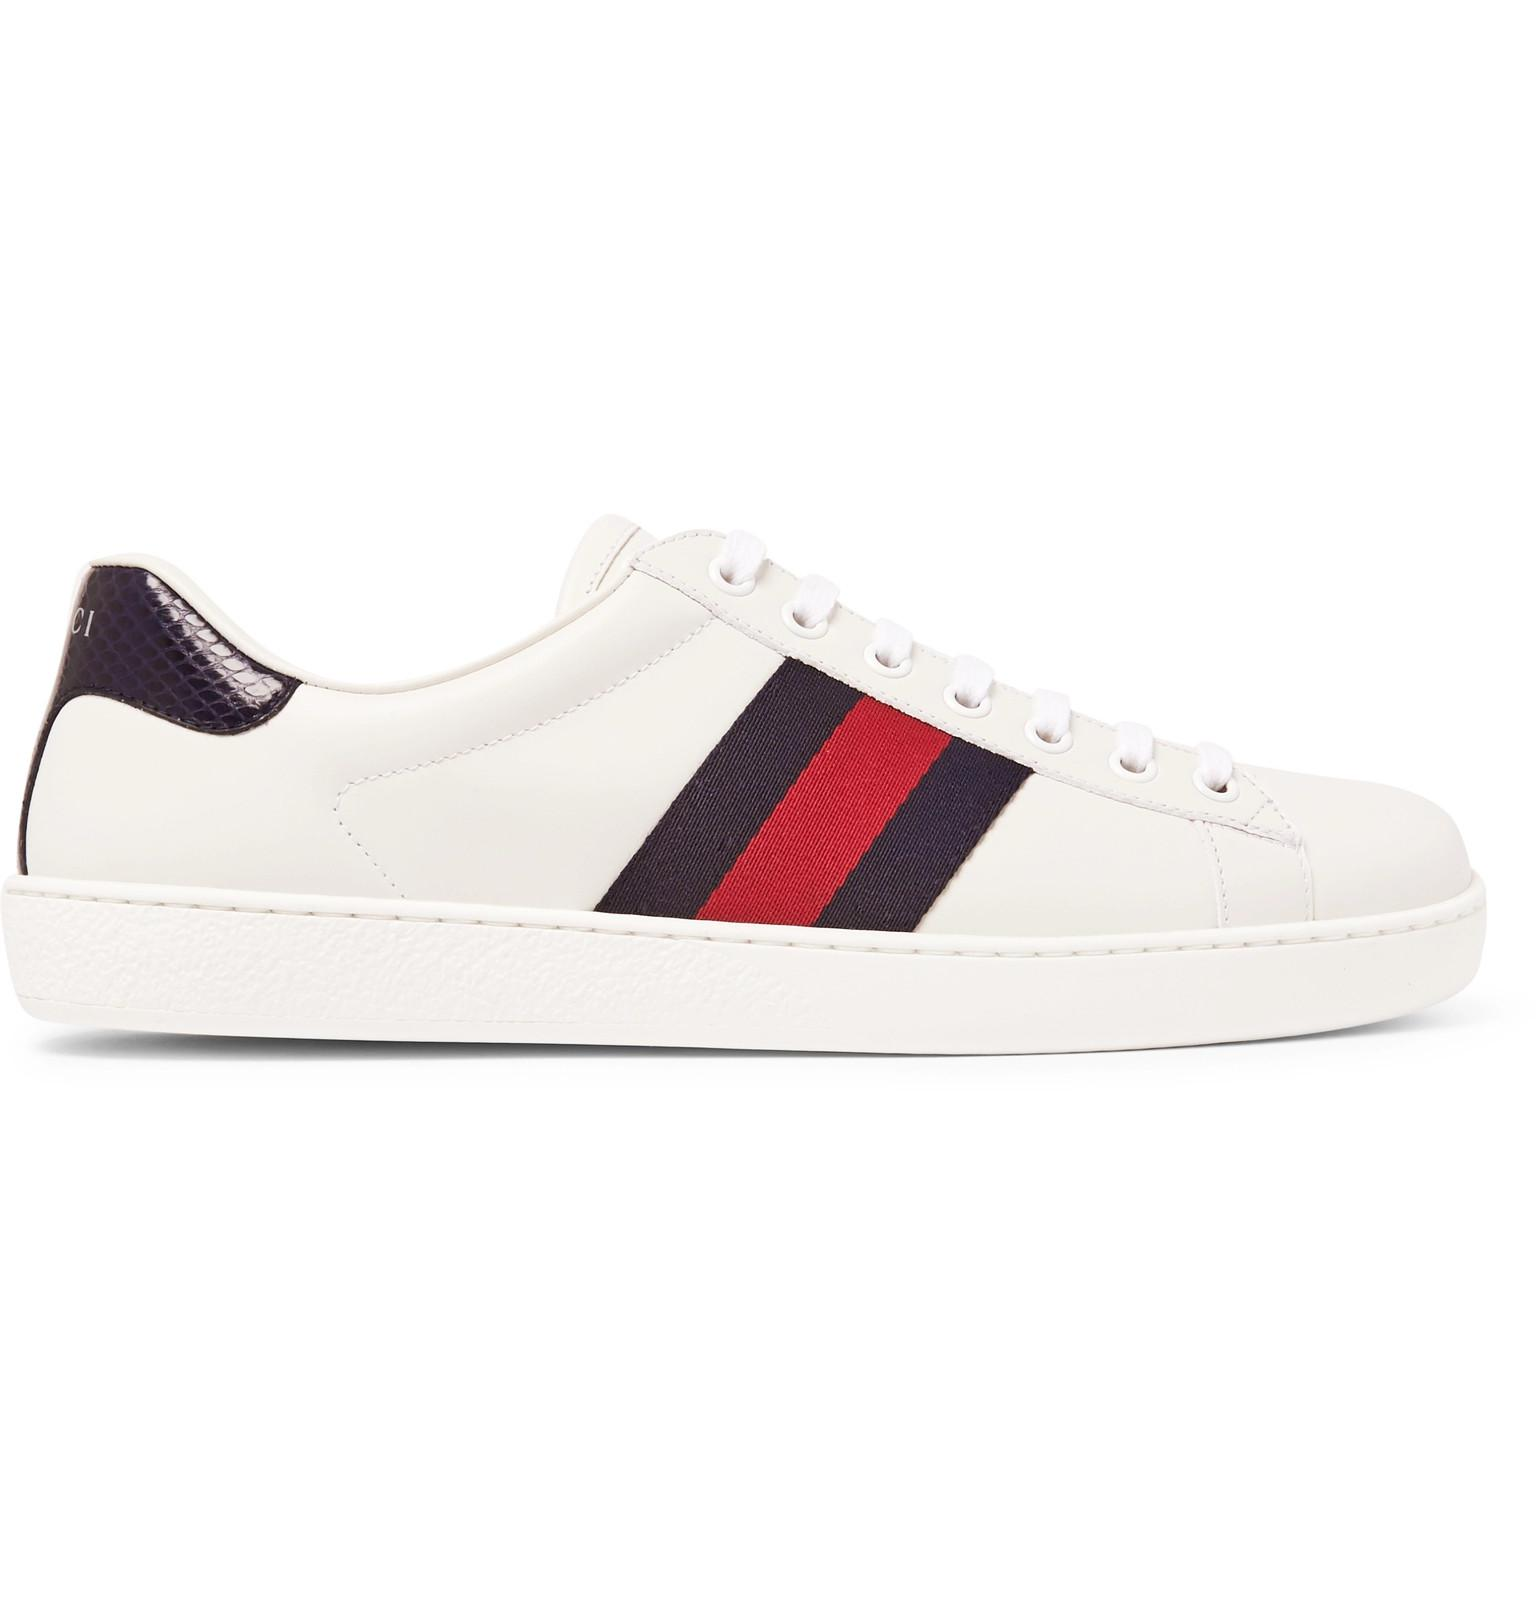 51ad1822de3 Gucci - White Ace Watersnake-trimmed Leather Sneakers for Men - Lyst. View  fullscreen